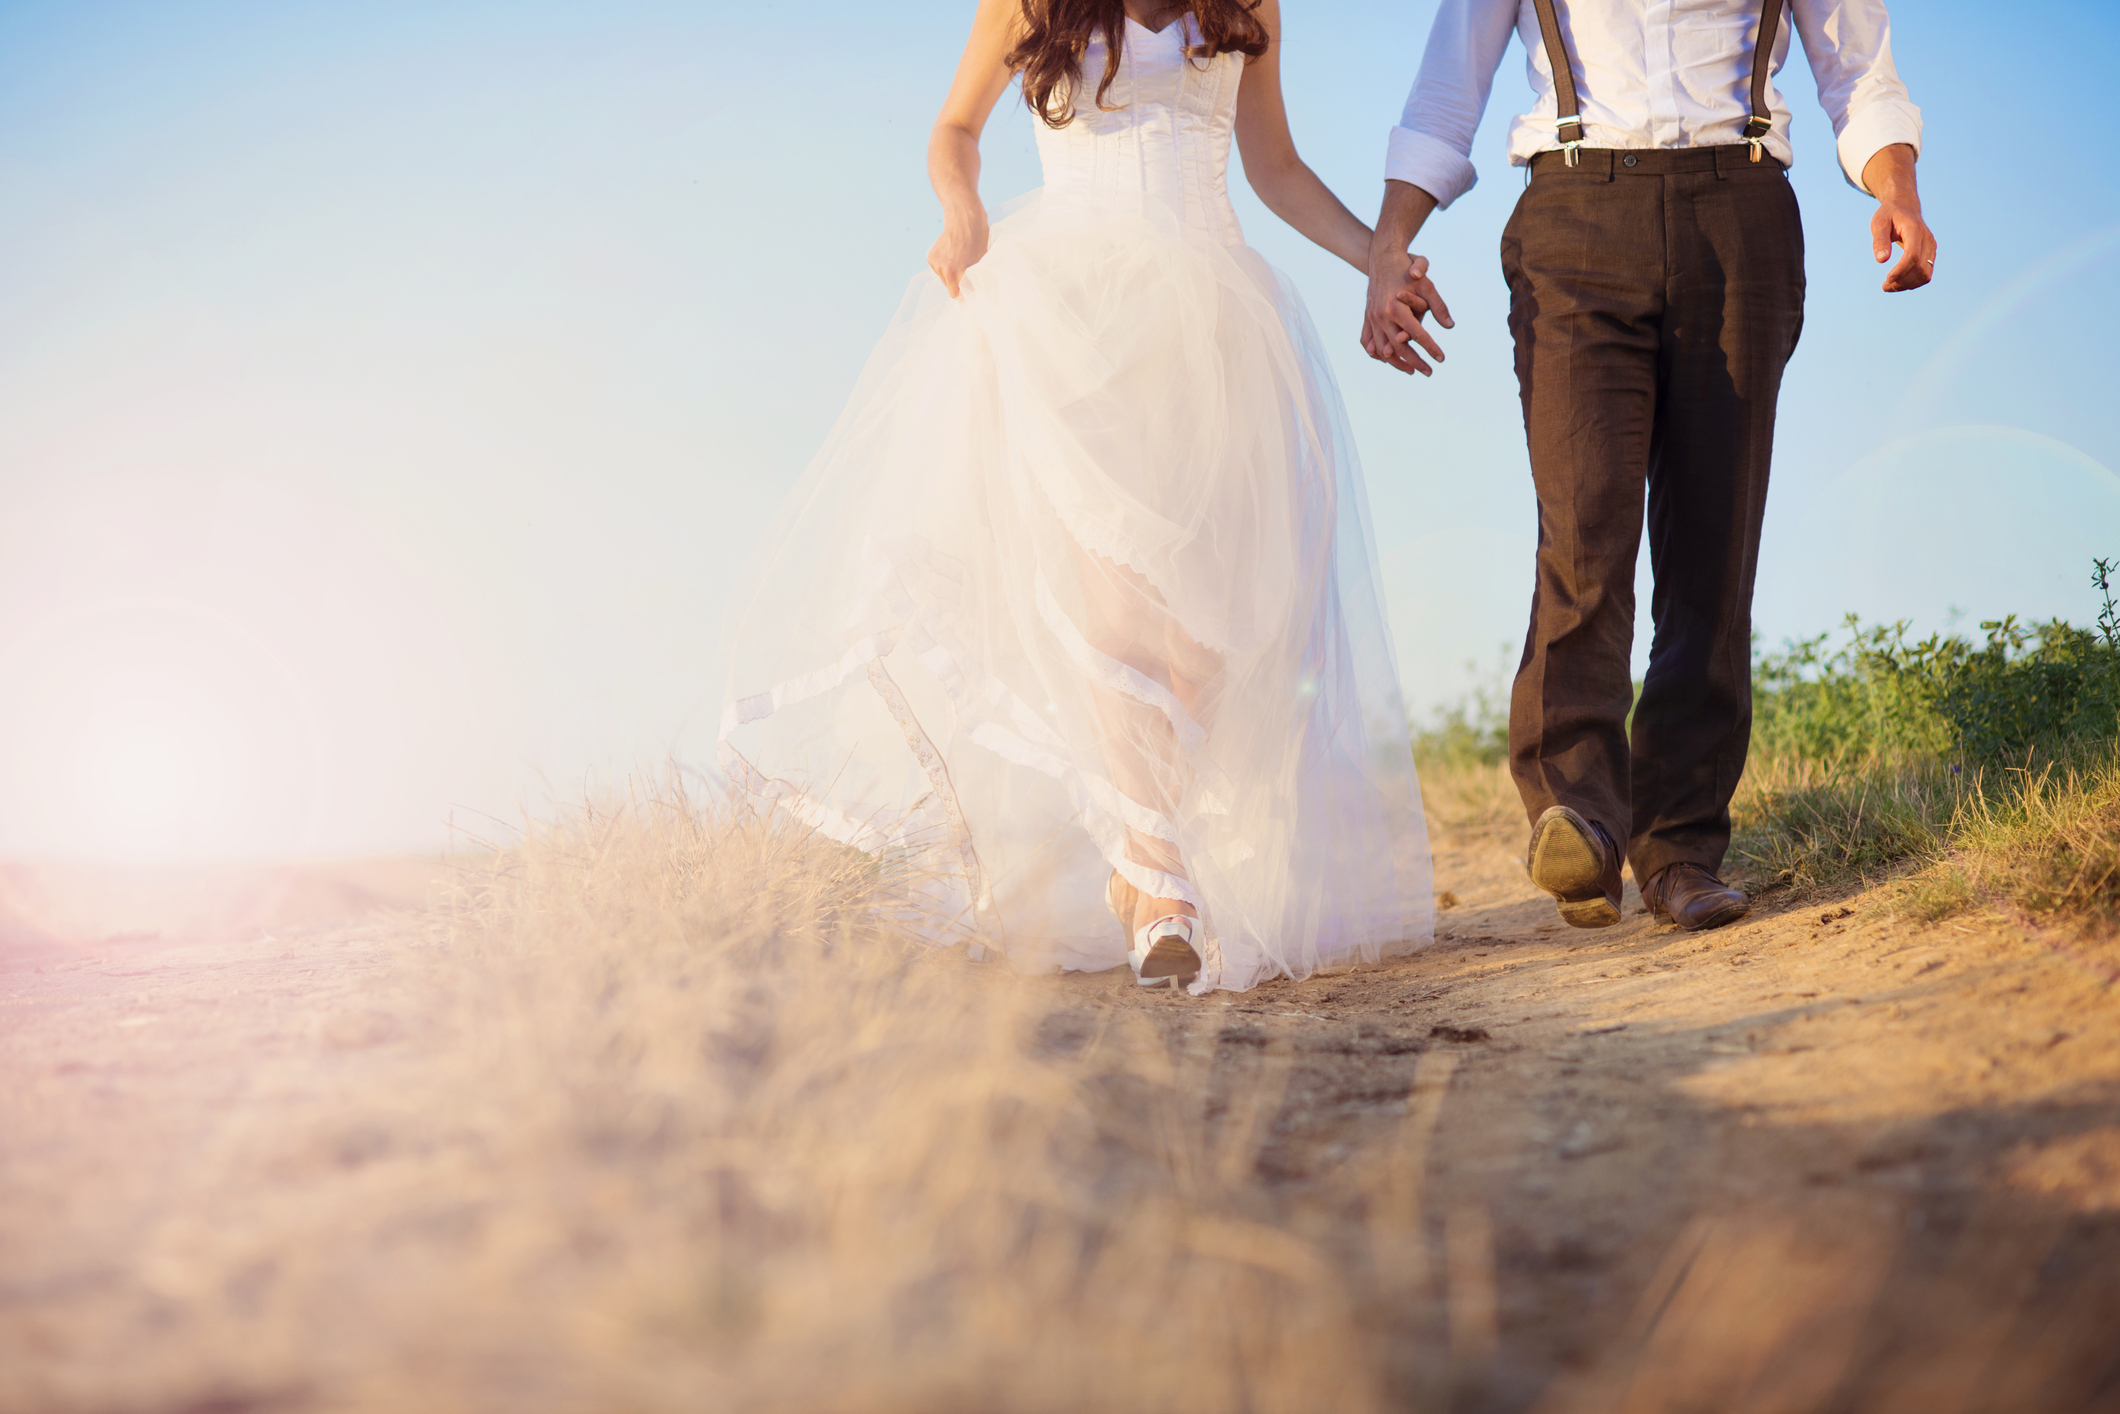 Canceled weddings are more common than you think